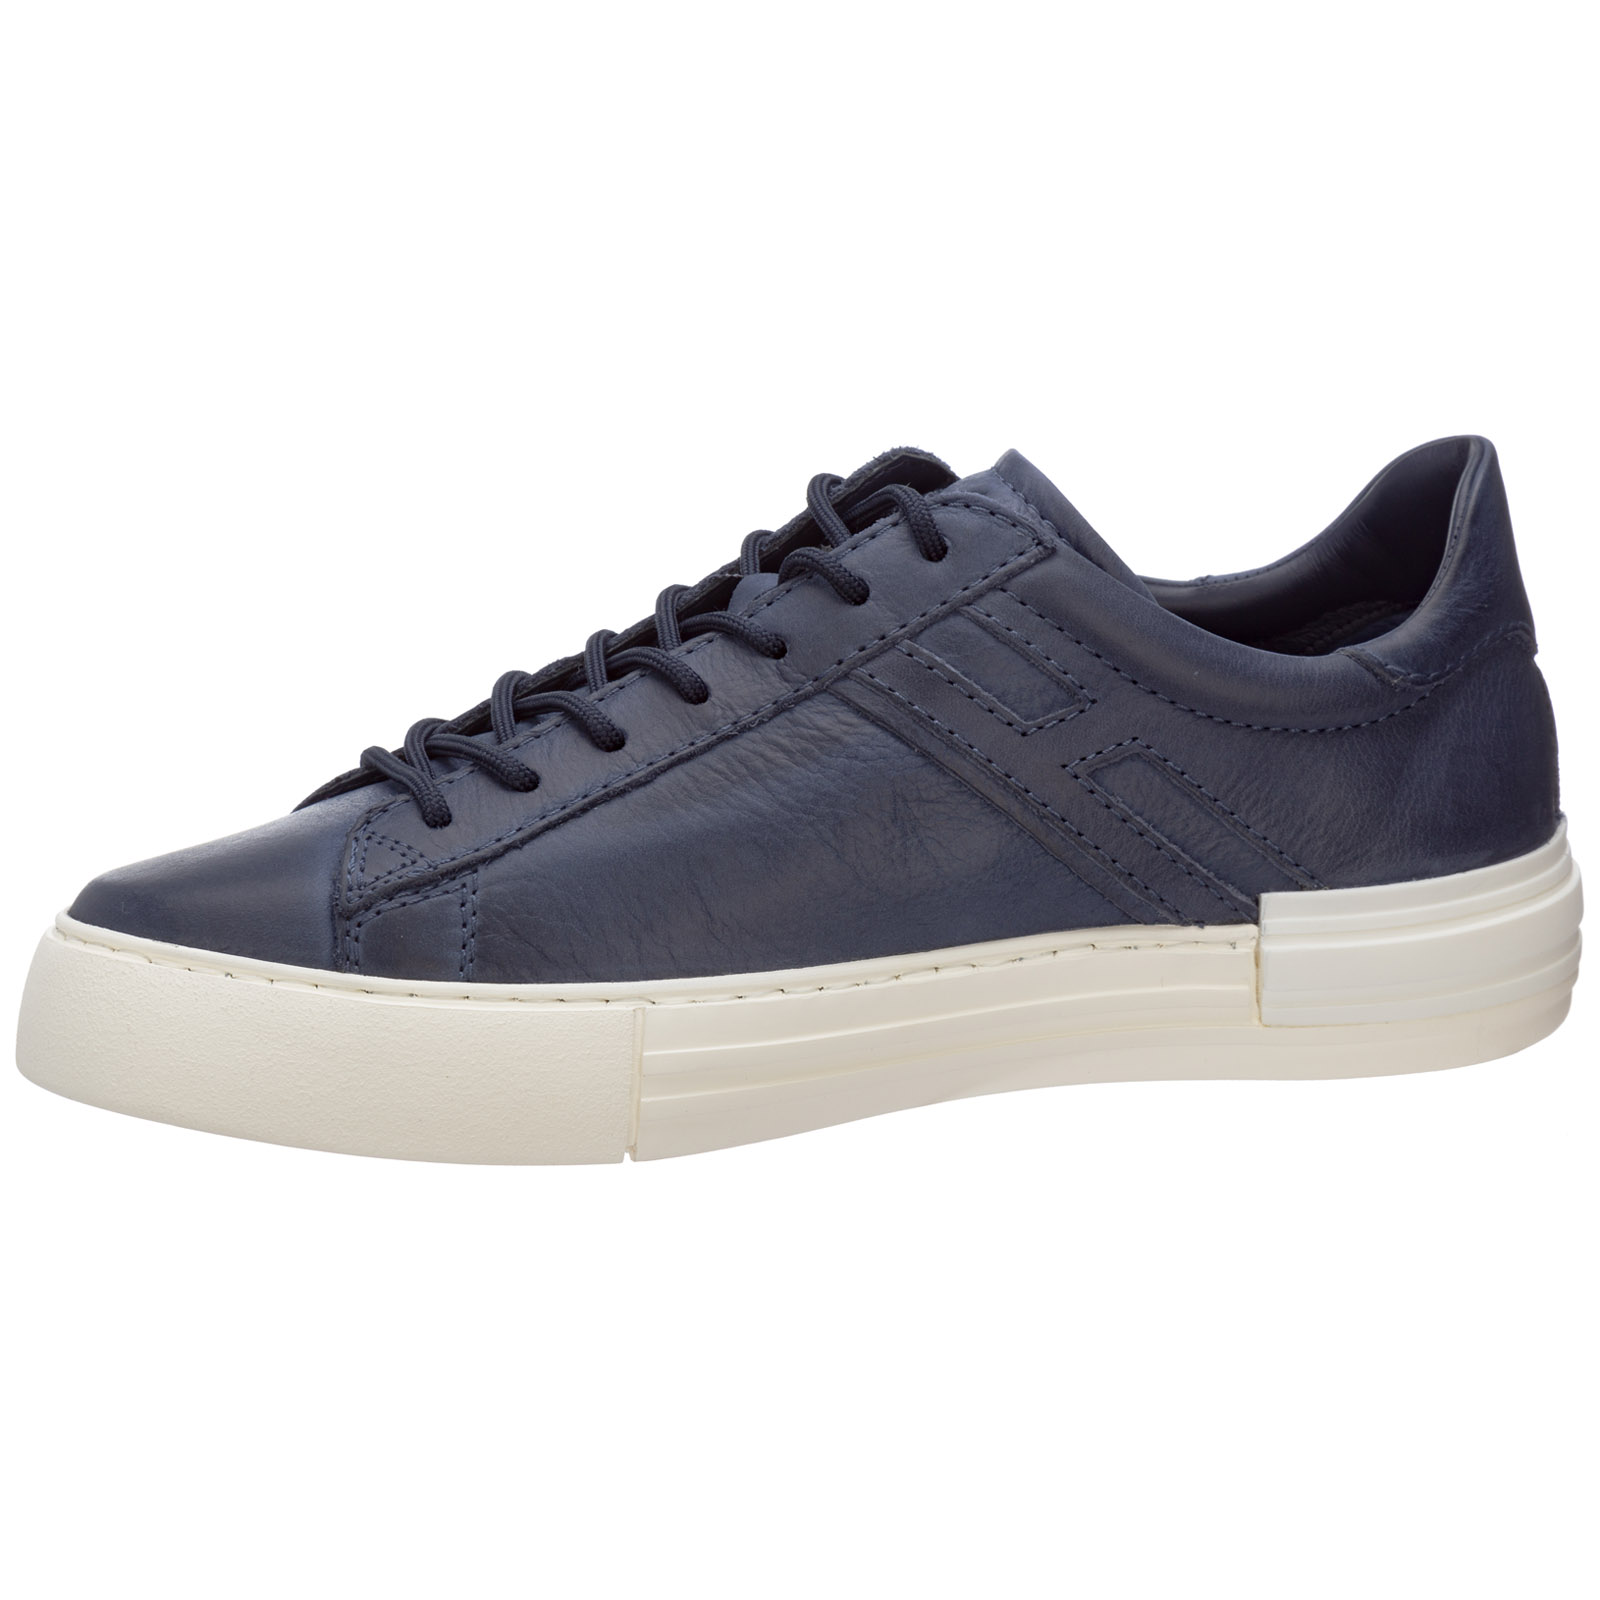 Men's shoes leather trainers sneakers rebel